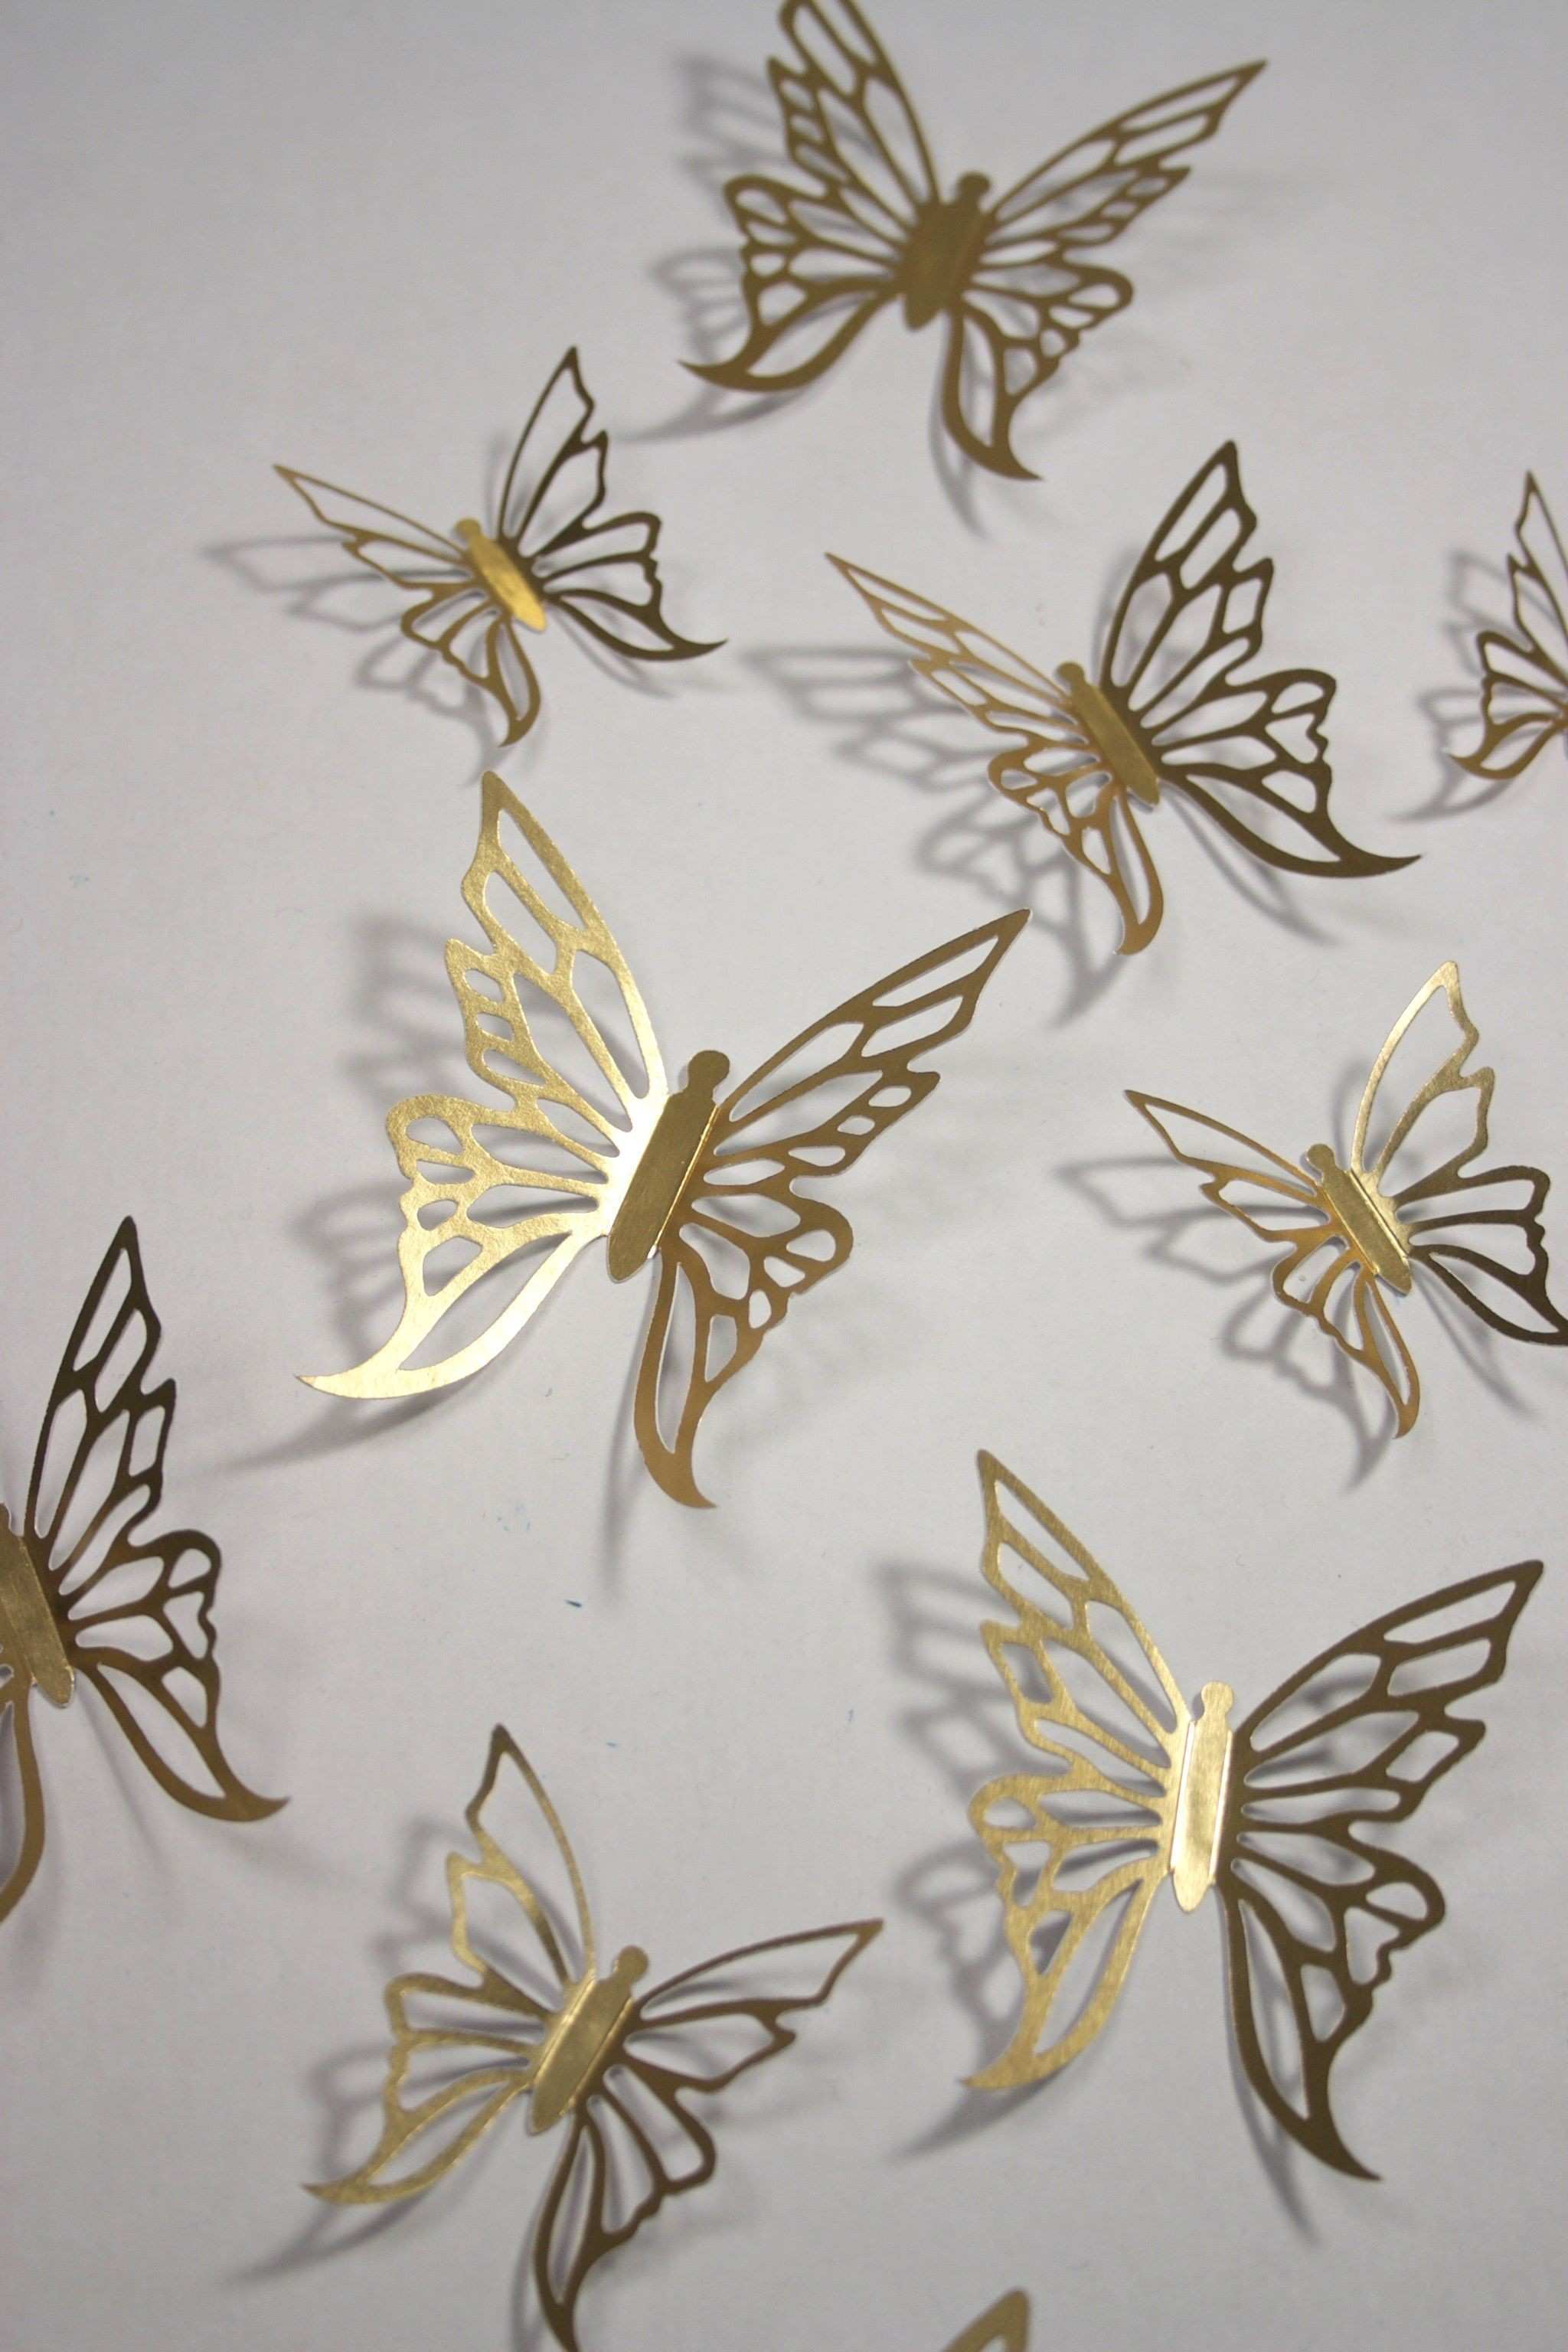 Interior Design 27 butterfly Wall Decor Appealing Wall Decal Design